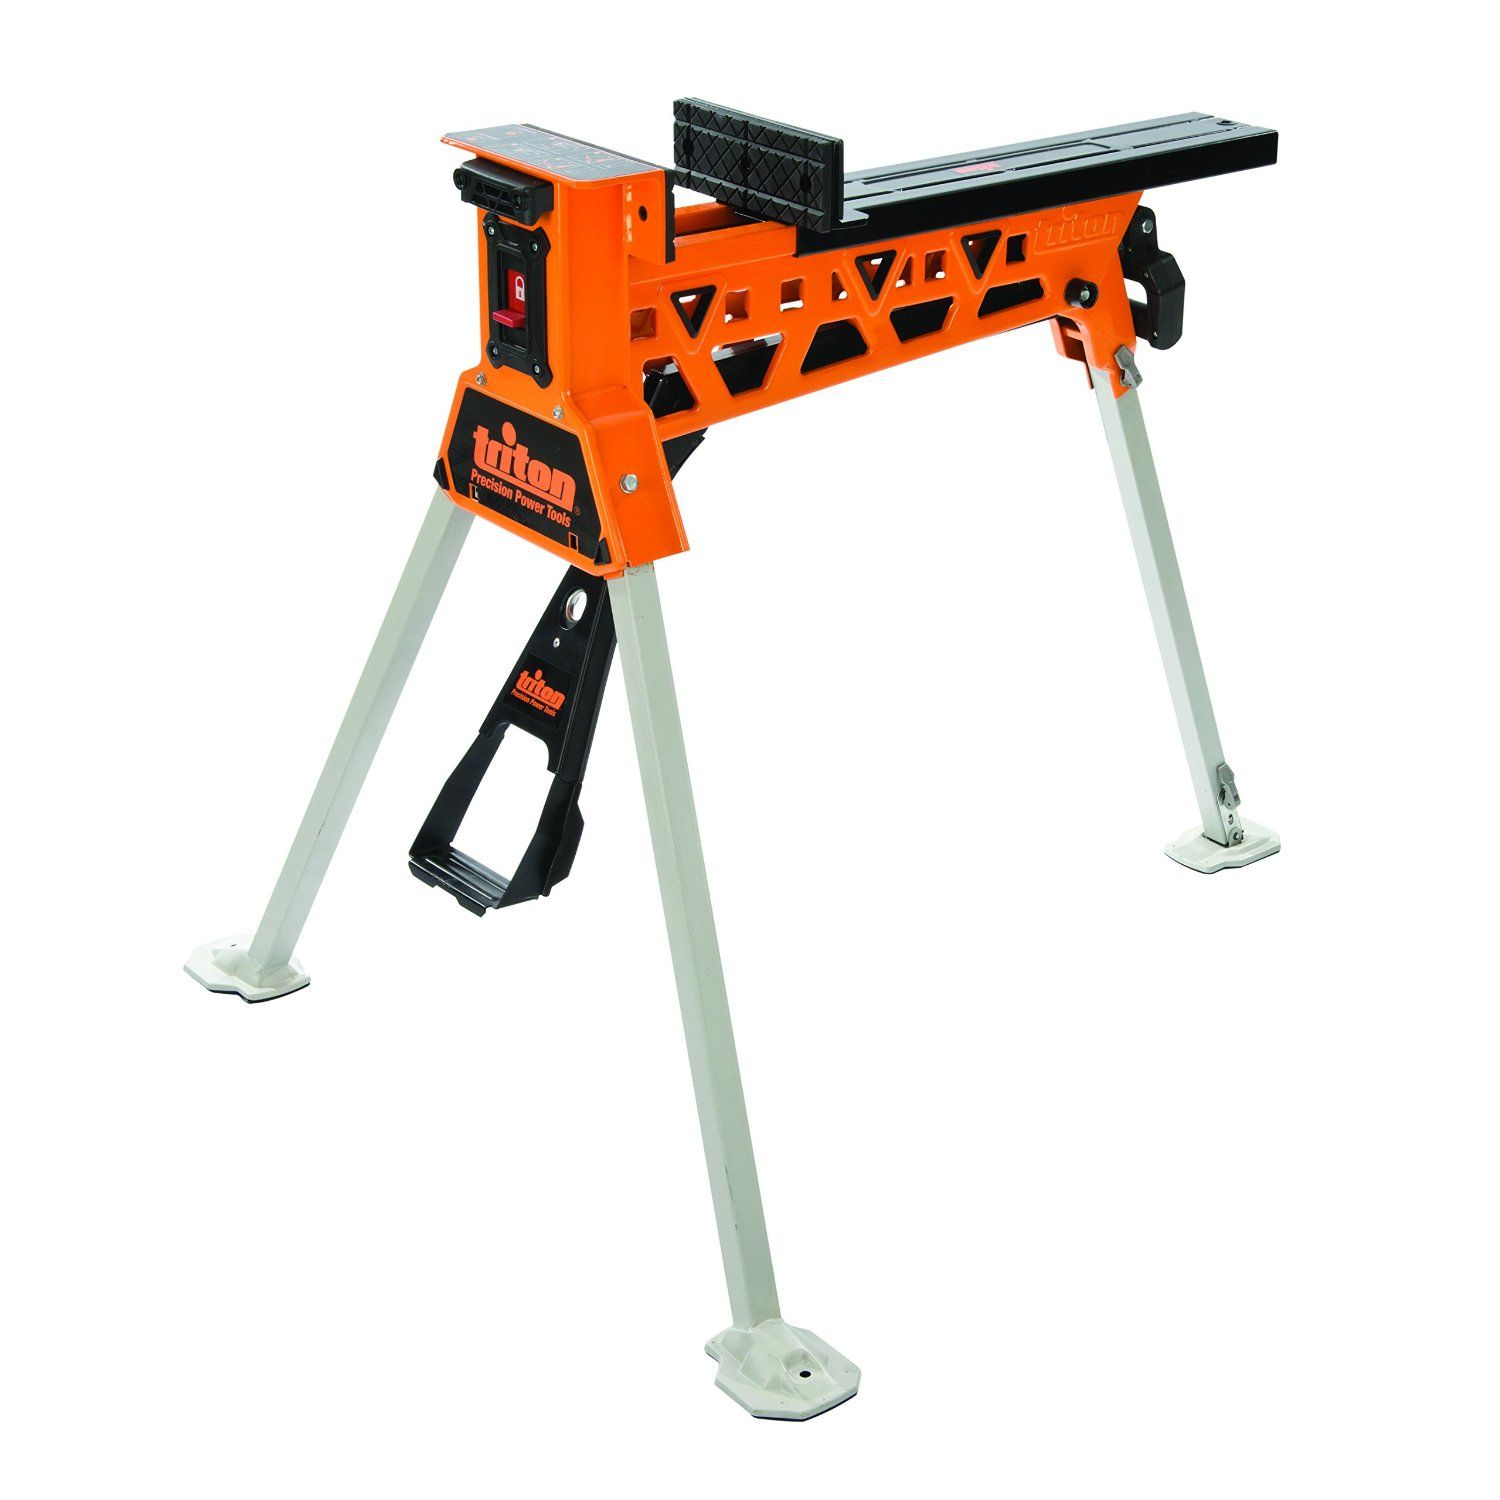 Remarkable Portable Sawhorse Clamping Clamp Jaw Foot Pedal Lock Project Pdpeps Interior Chair Design Pdpepsorg